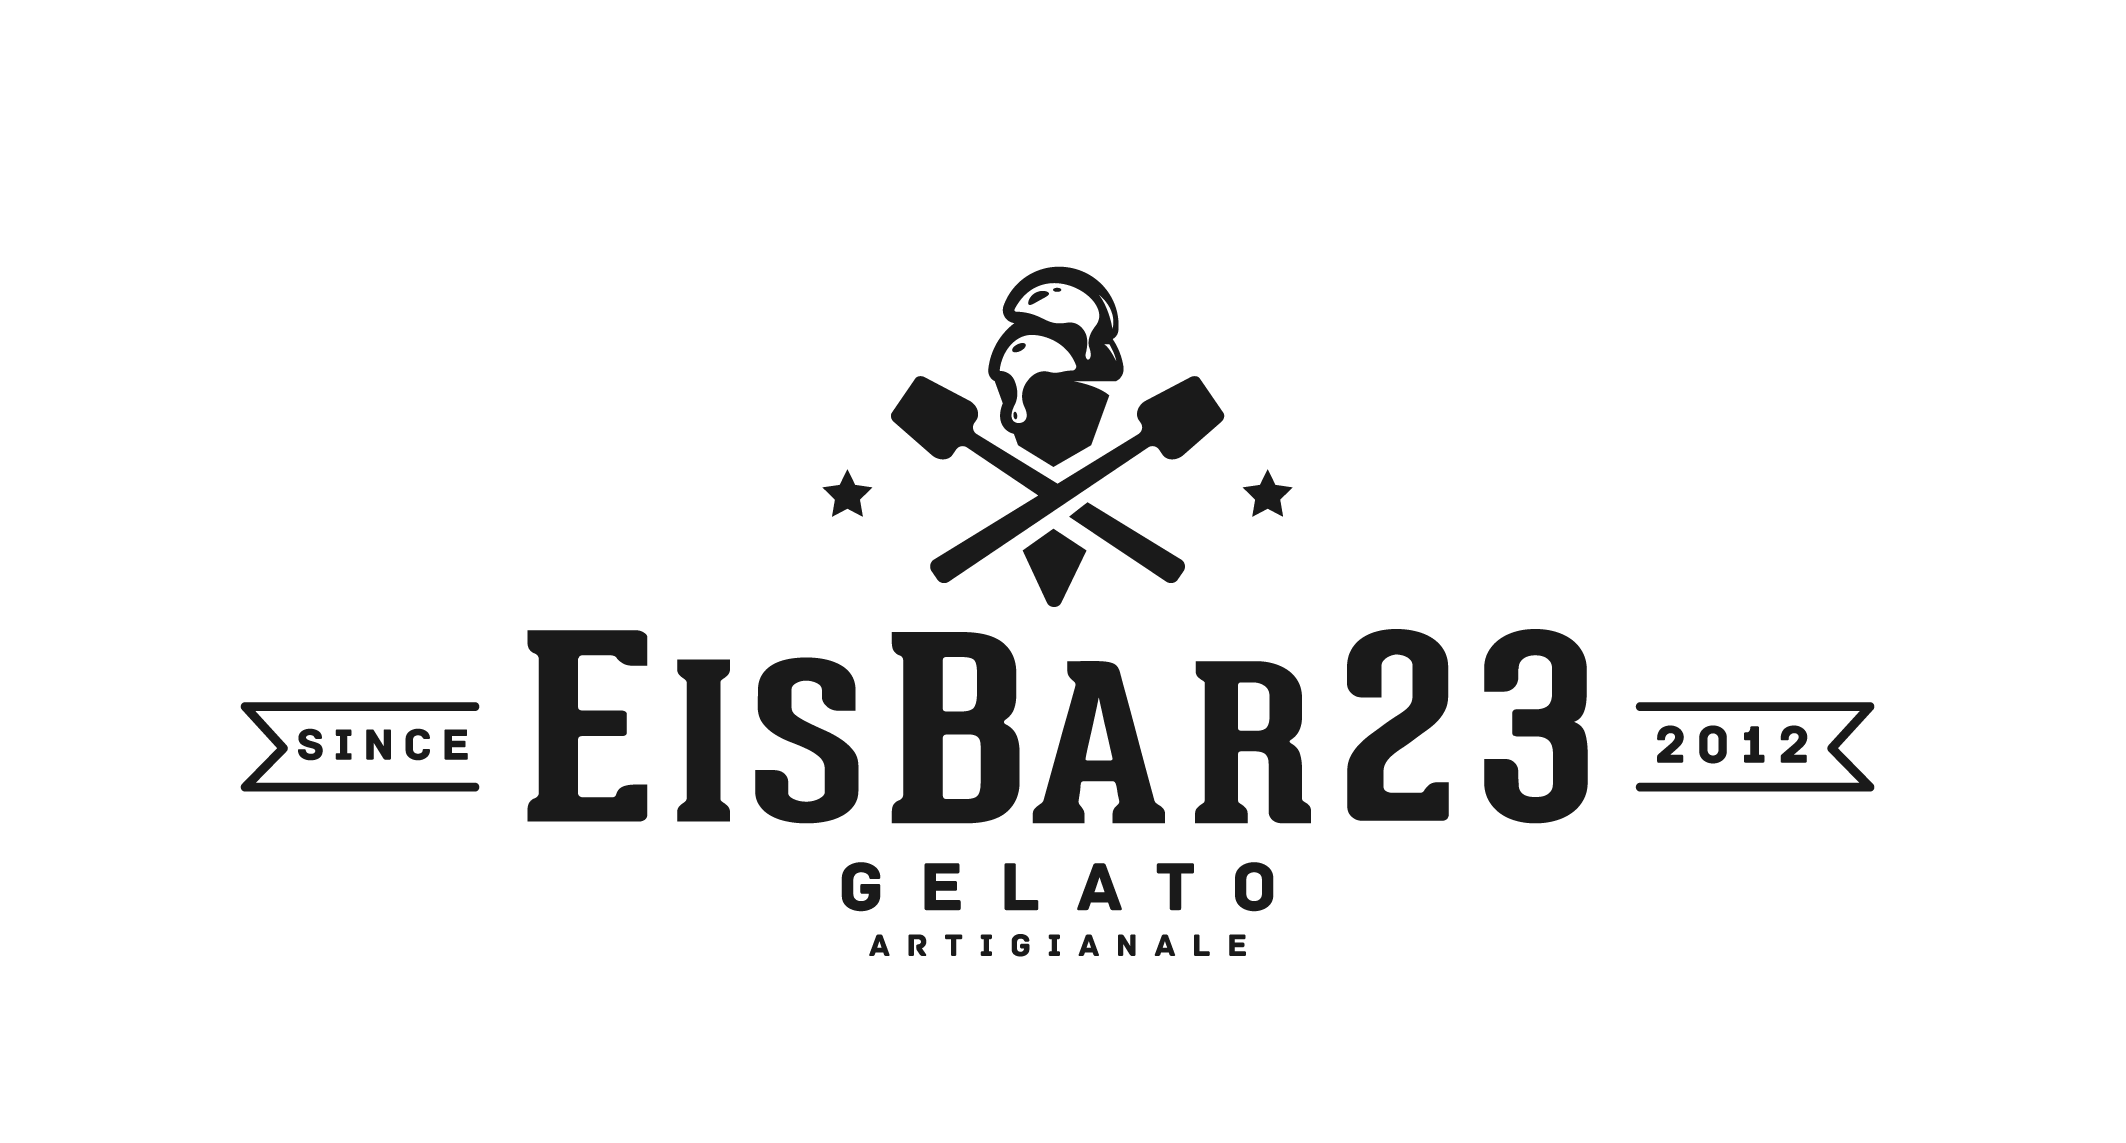 We are searching a new Logo for our new gelateria which have an industrial Style (Equipment in cement, Wood and Steel)